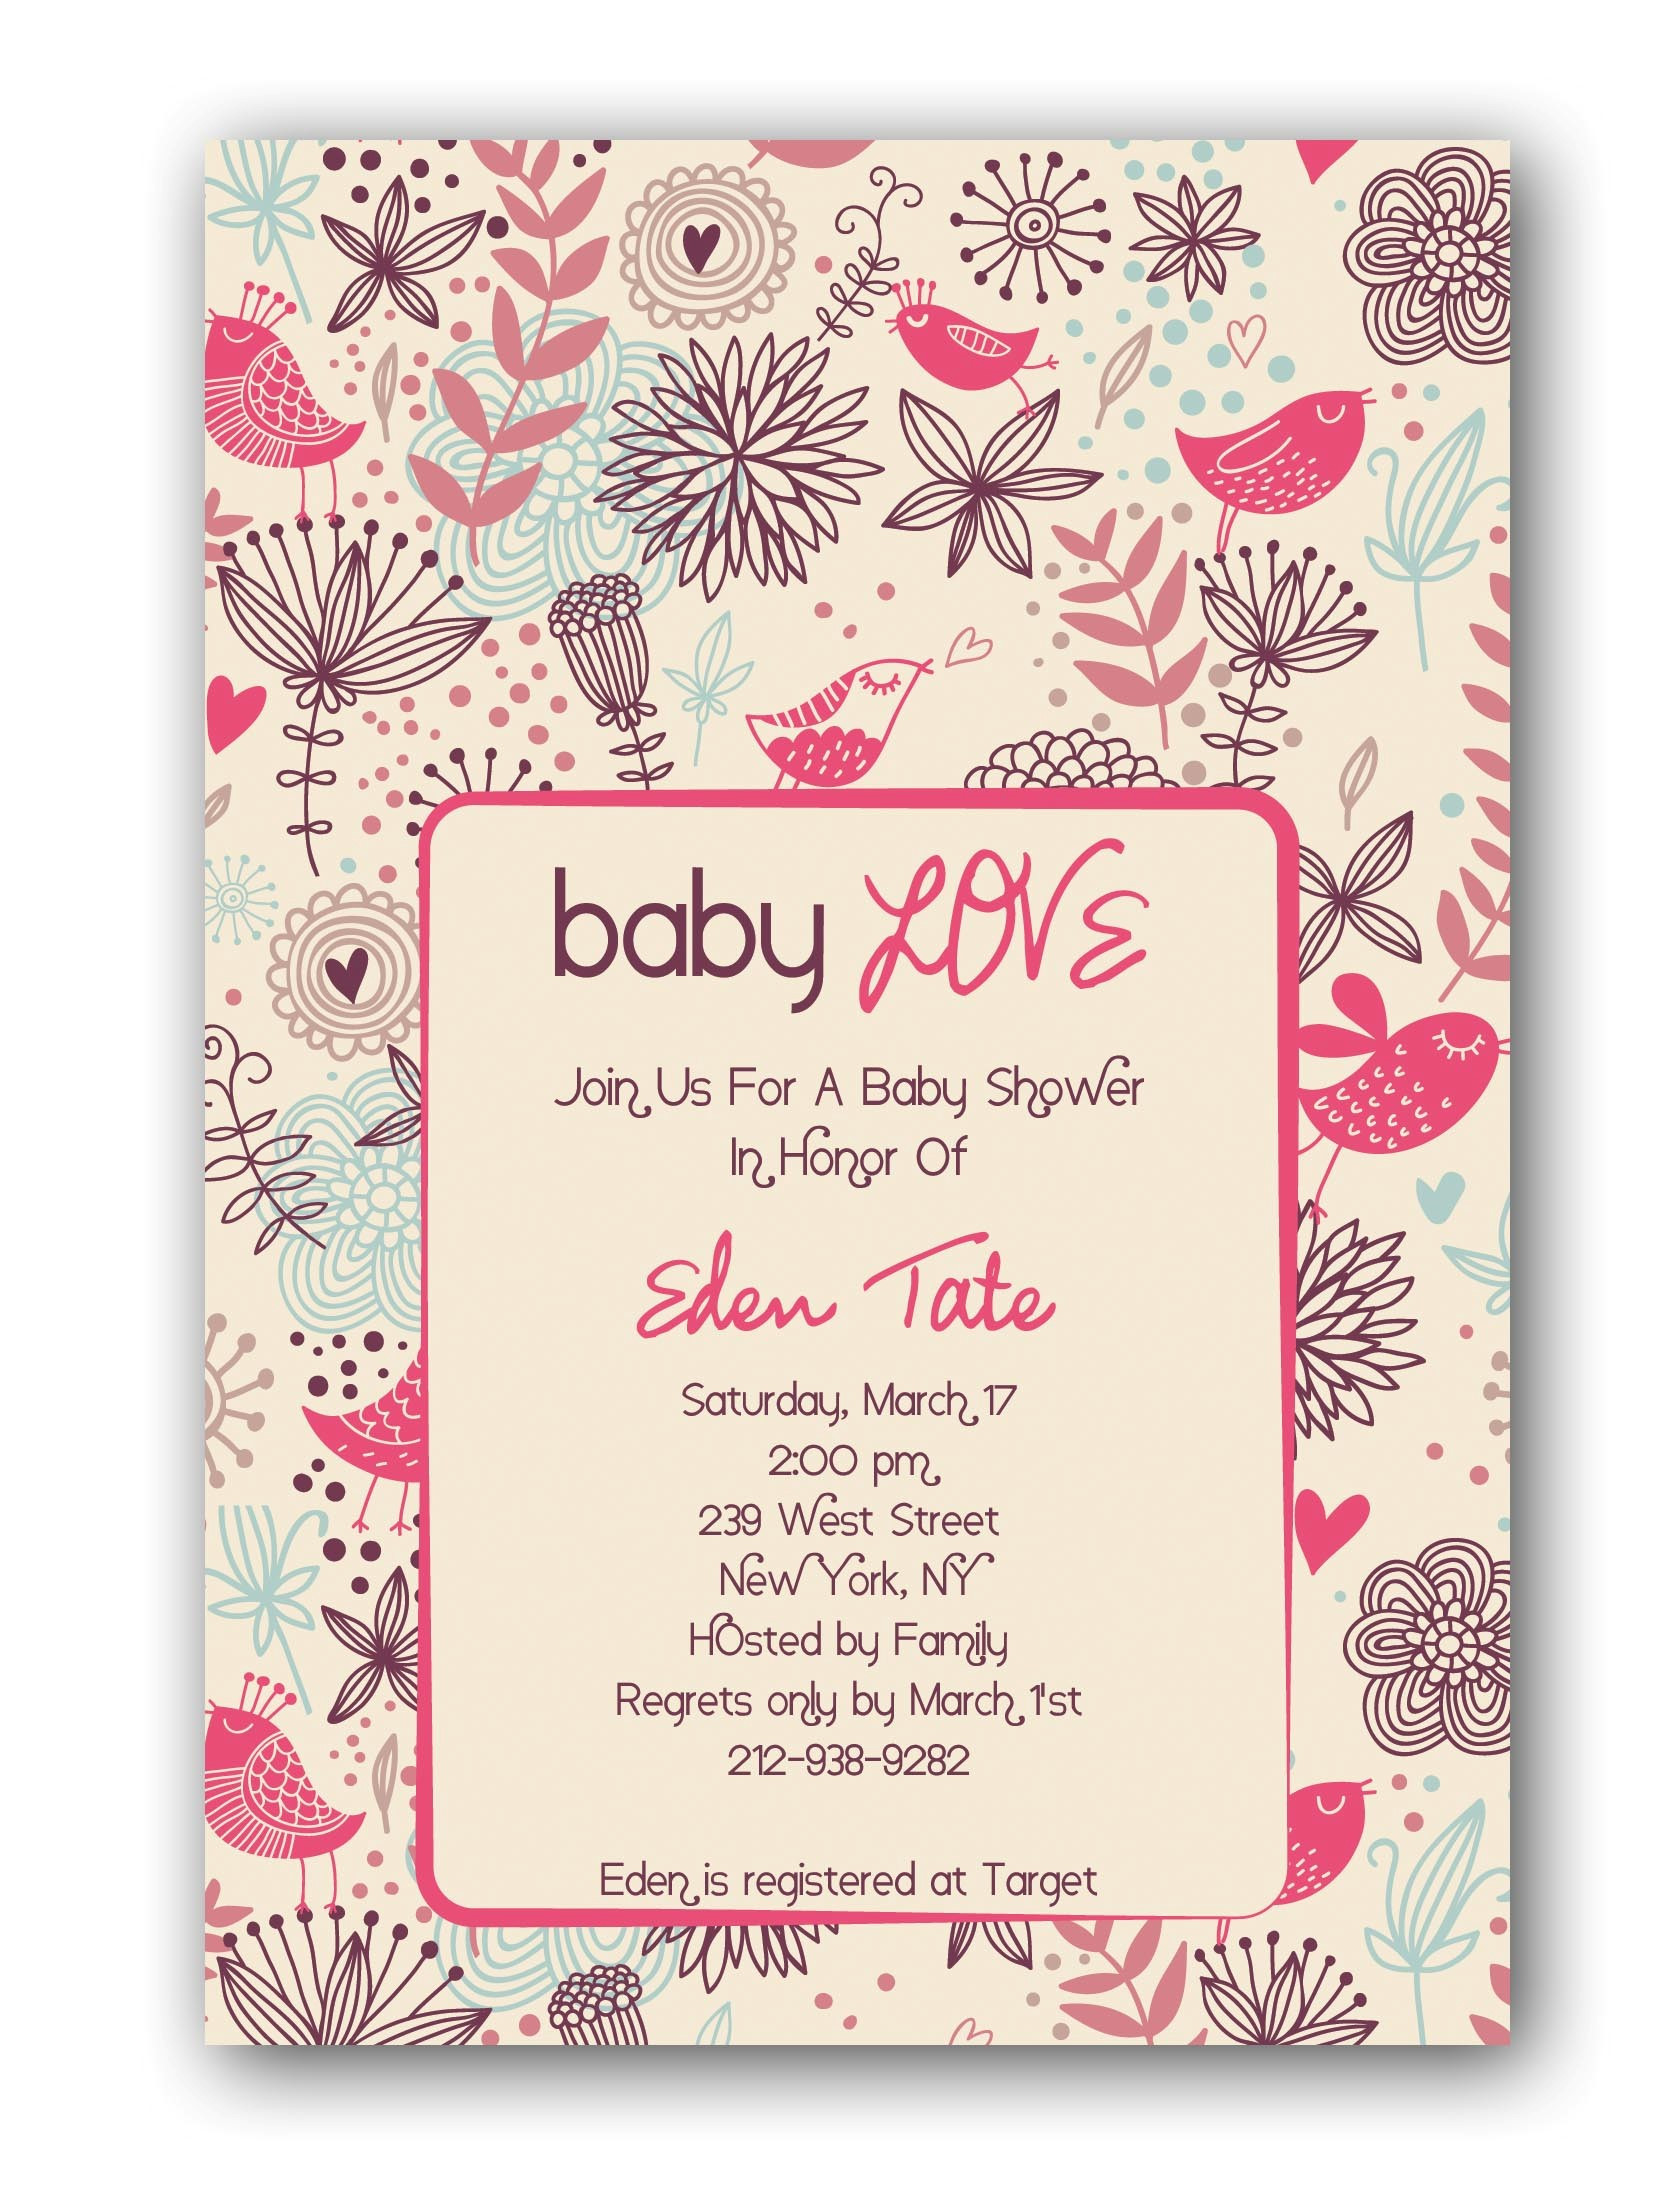 Full Size of Baby Shower:63+ Delightful Cheap Baby Shower Invitations Image Inspirations Cheap Baby Shower Invitations Baby Shower Accessories Baby Shower Rentals Arreglos Para Baby Shower Adornos De Baby Shower Baby Shower Registry Mermaid Baby Shower Invitations Awesome Invitation For Baby Shower